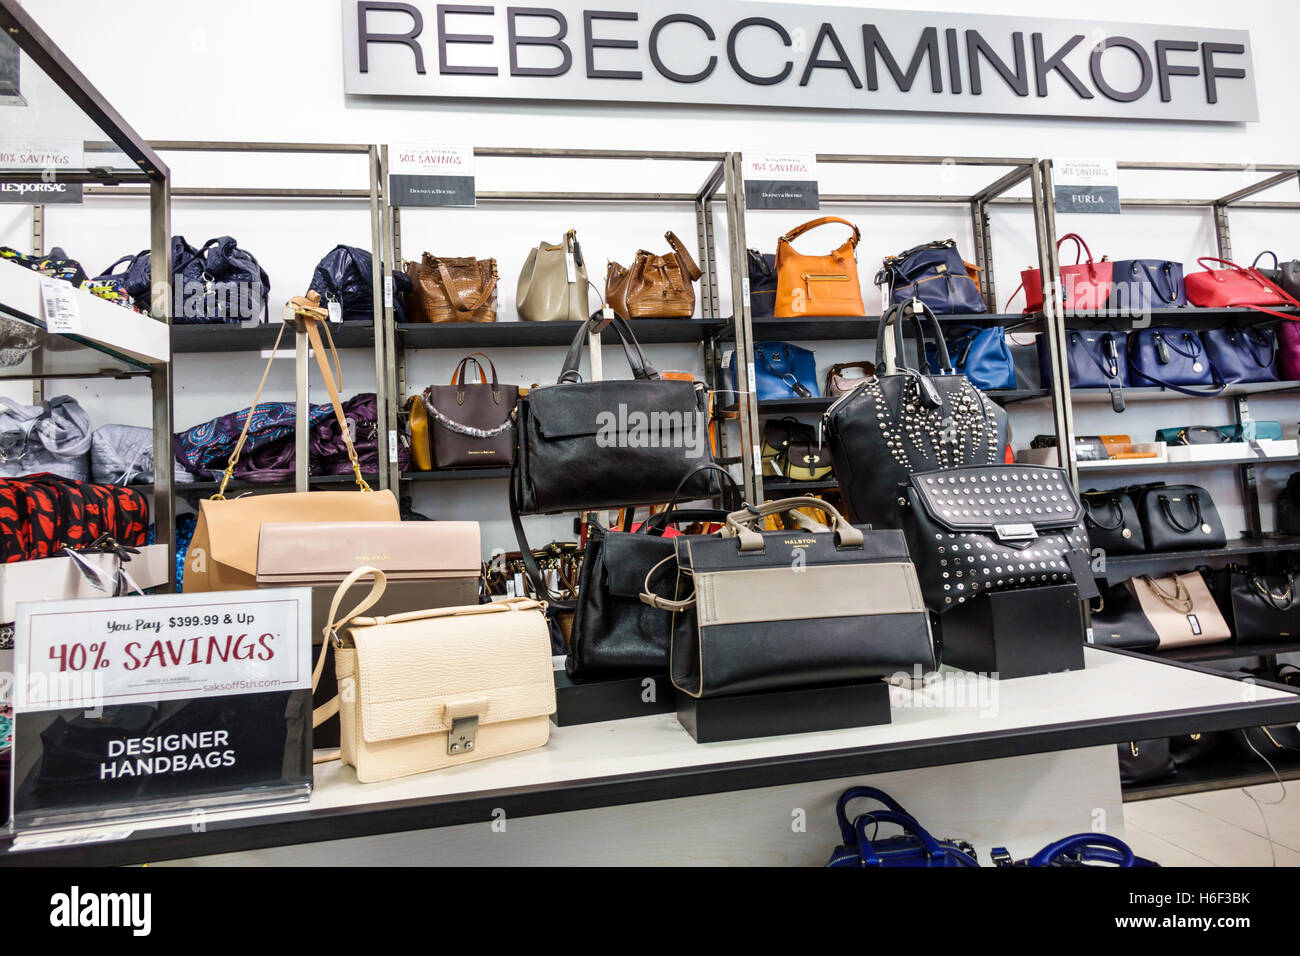 Palm Beach Florida Outlets shopping Saks Fifth Avenue Off 5th inside display  sale designer handbags Rebecca 72f3ce42ac388